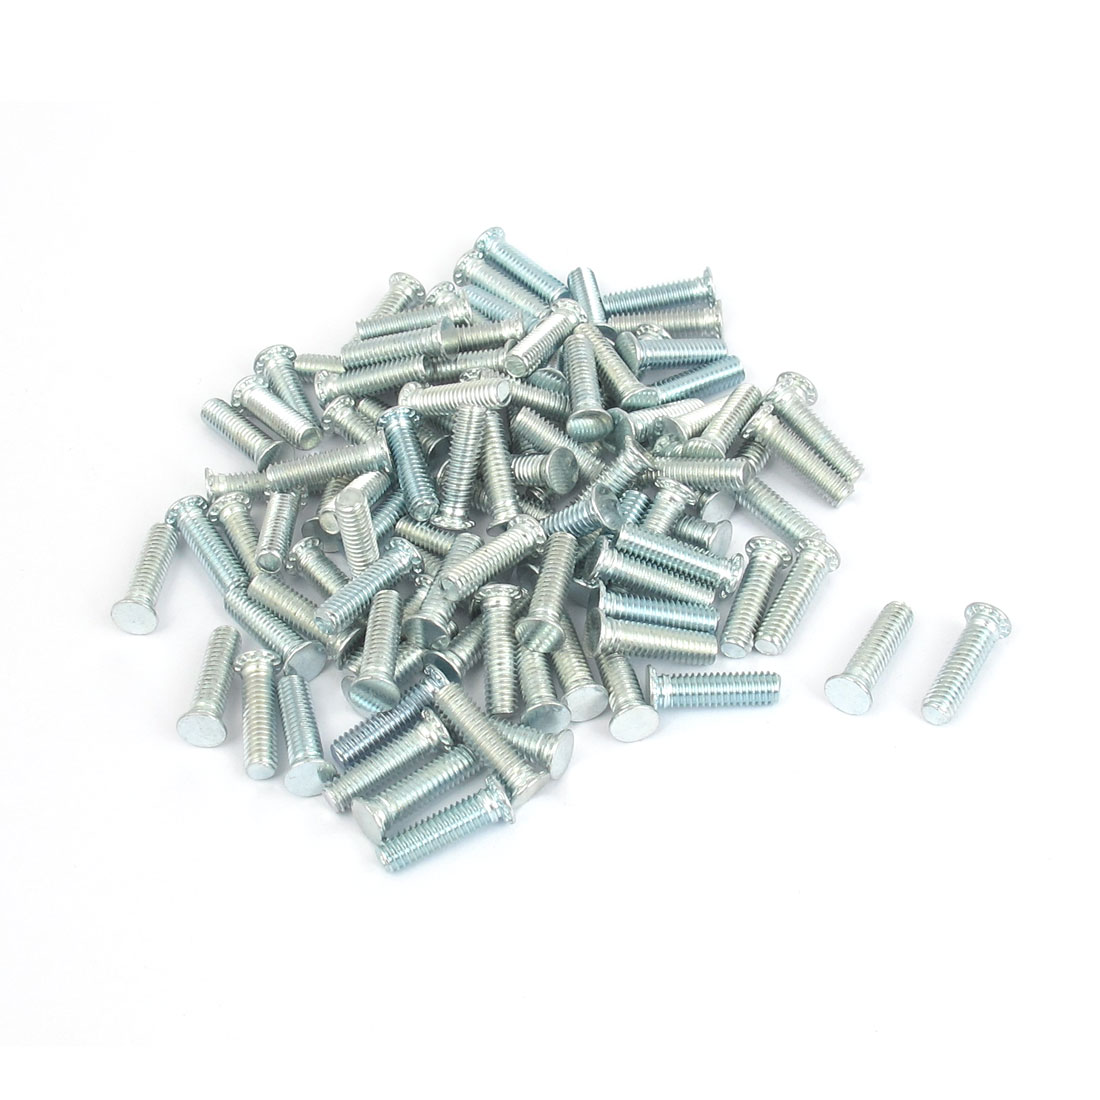 M4x15mm Zinc Plated Flush Head Self Clinching Threaded Studs Fastener 100pcs